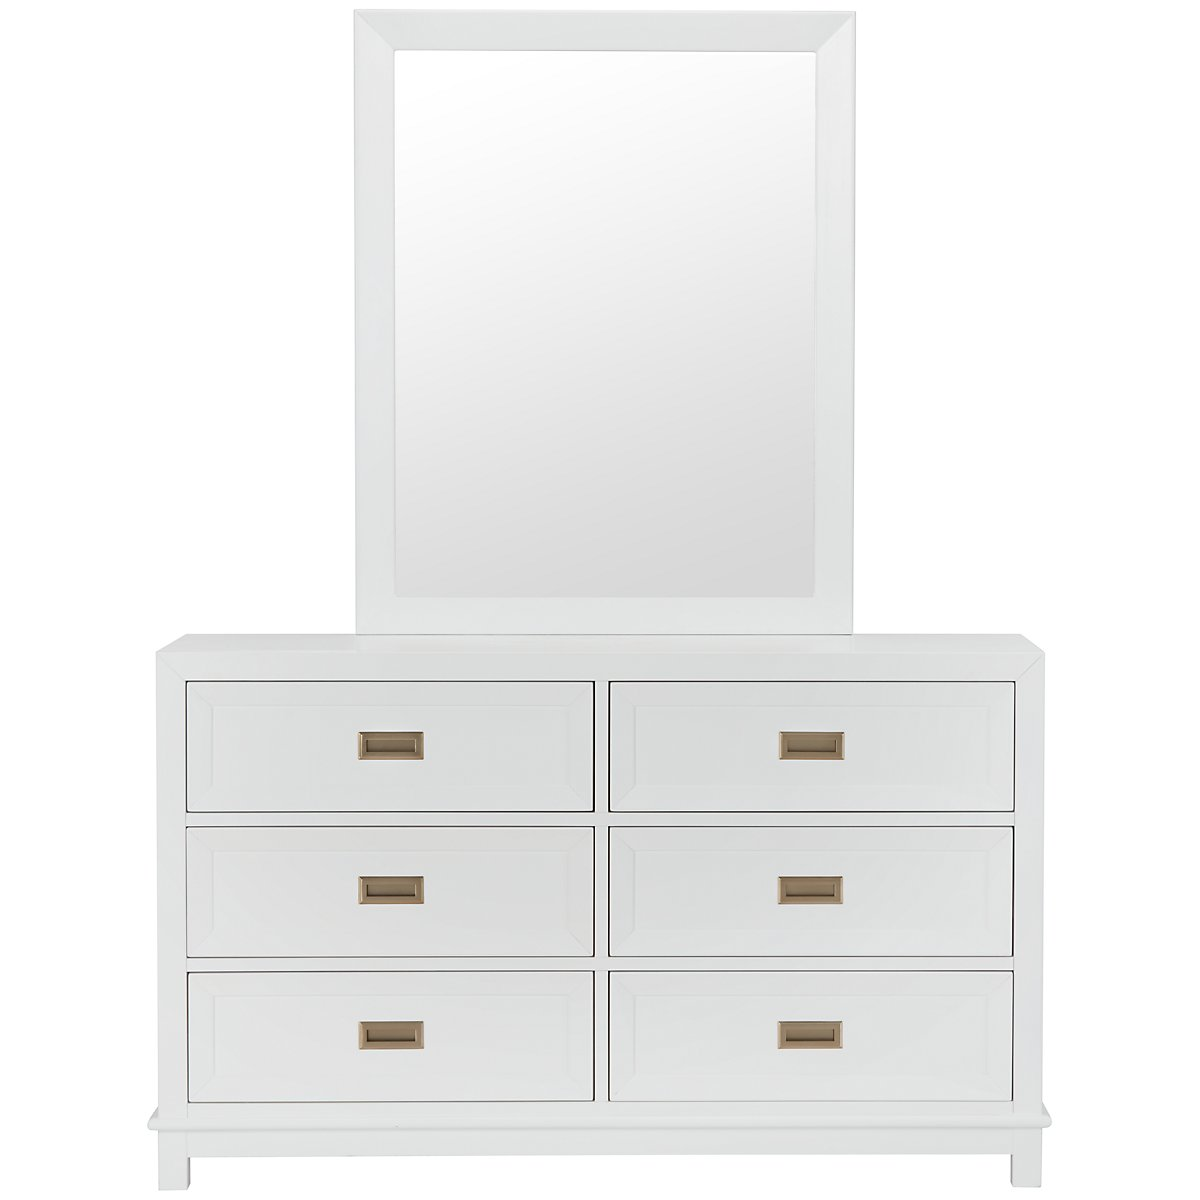 City Furniture Ryder White Dresser Mirror